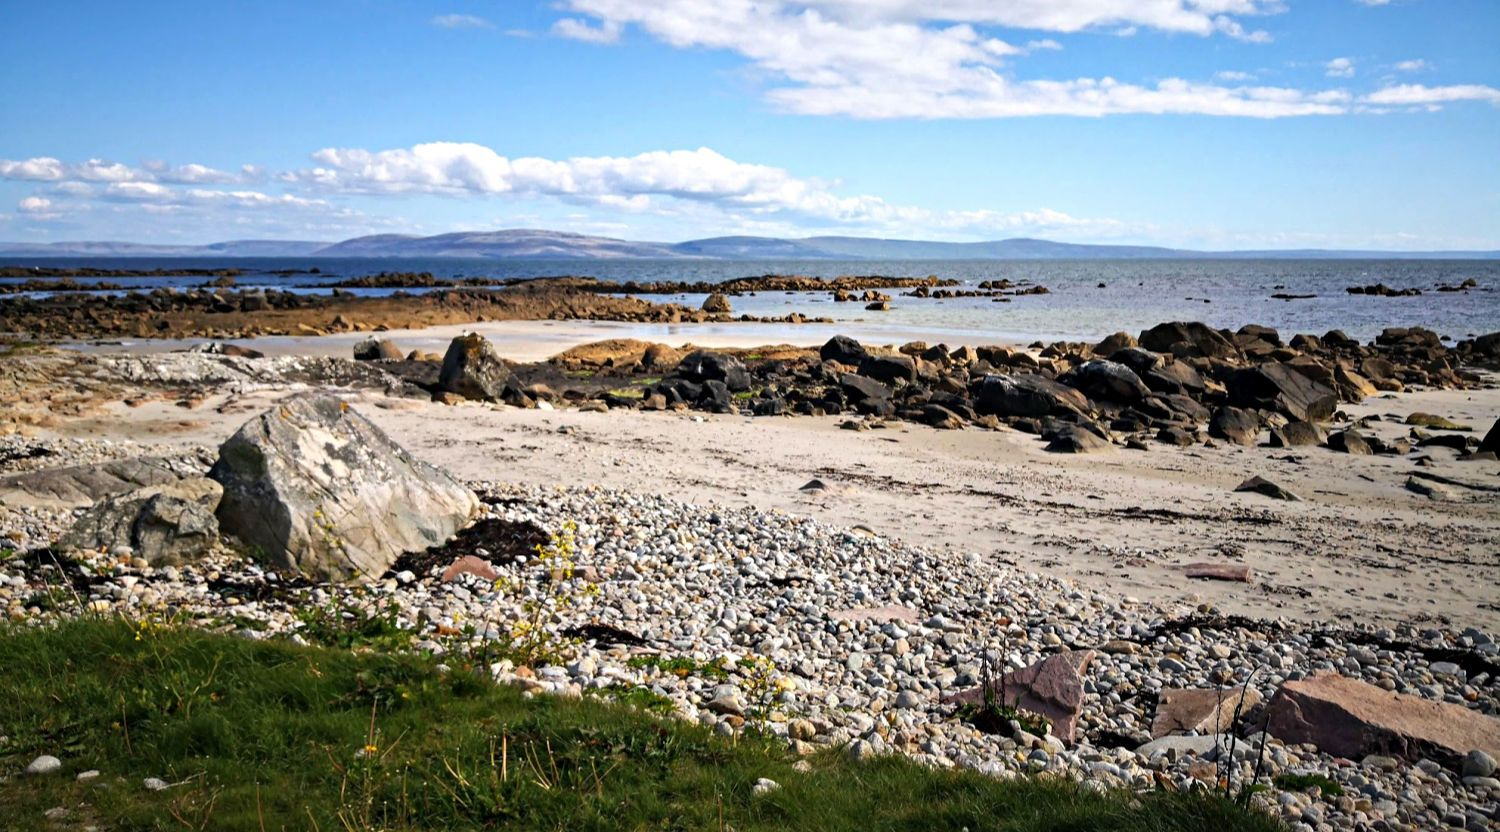 Just a few minutes' drive from Galway City. Plenty of beaches to choose from hereabouts and plenty more further afield in Connemara and beyond. The Burren on the horizon.